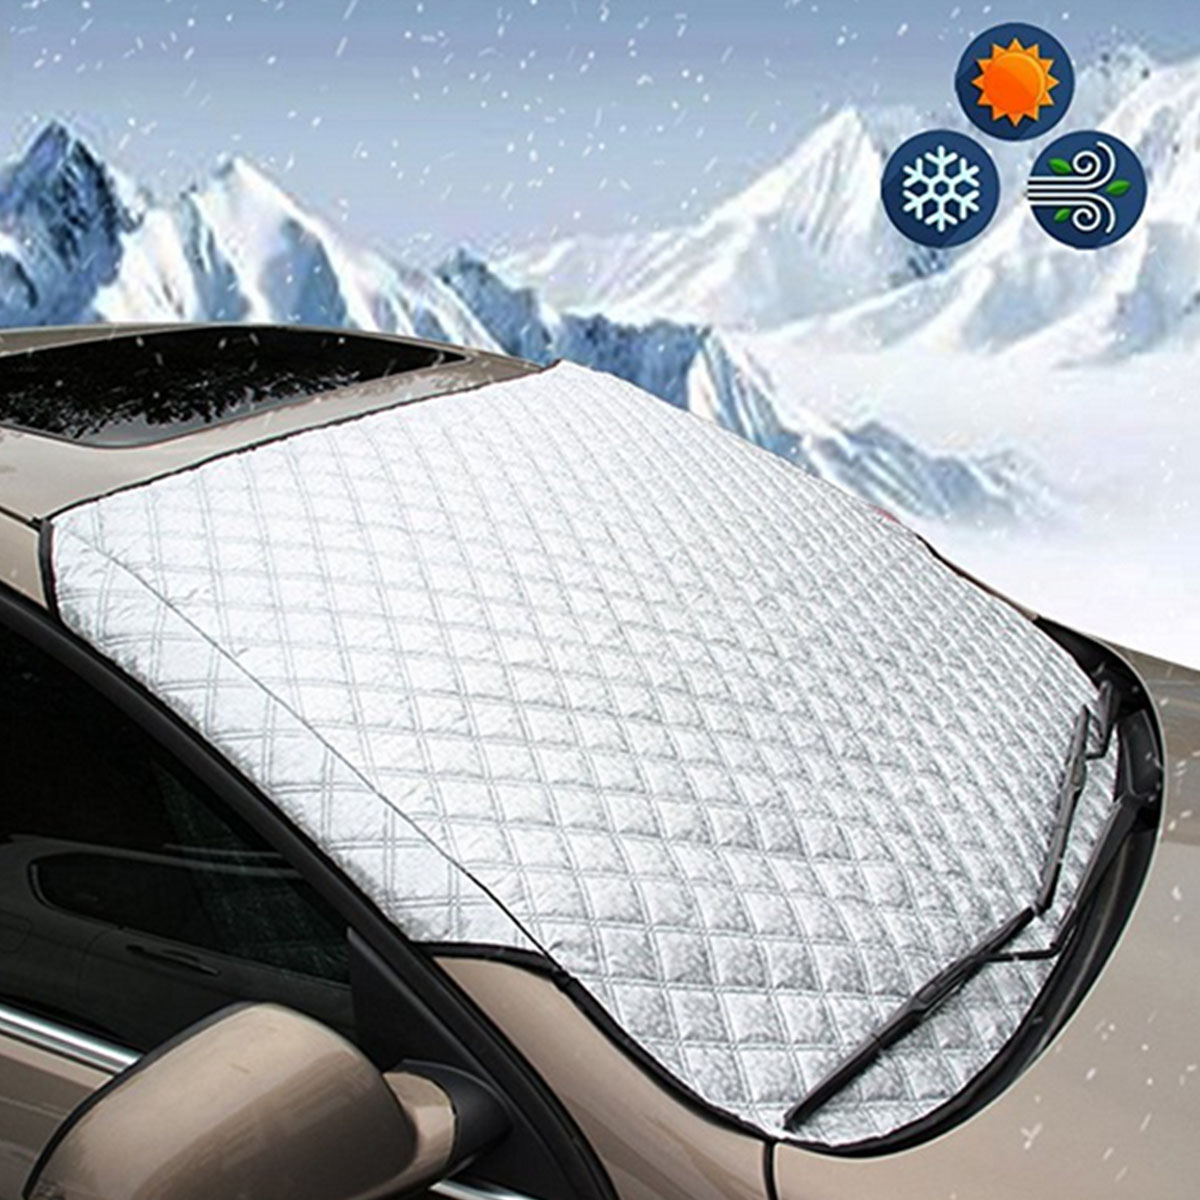 WINDSCREEN COVER Magnetic Car Window Screen sunlight Frost Ice Snow Dust Protector image